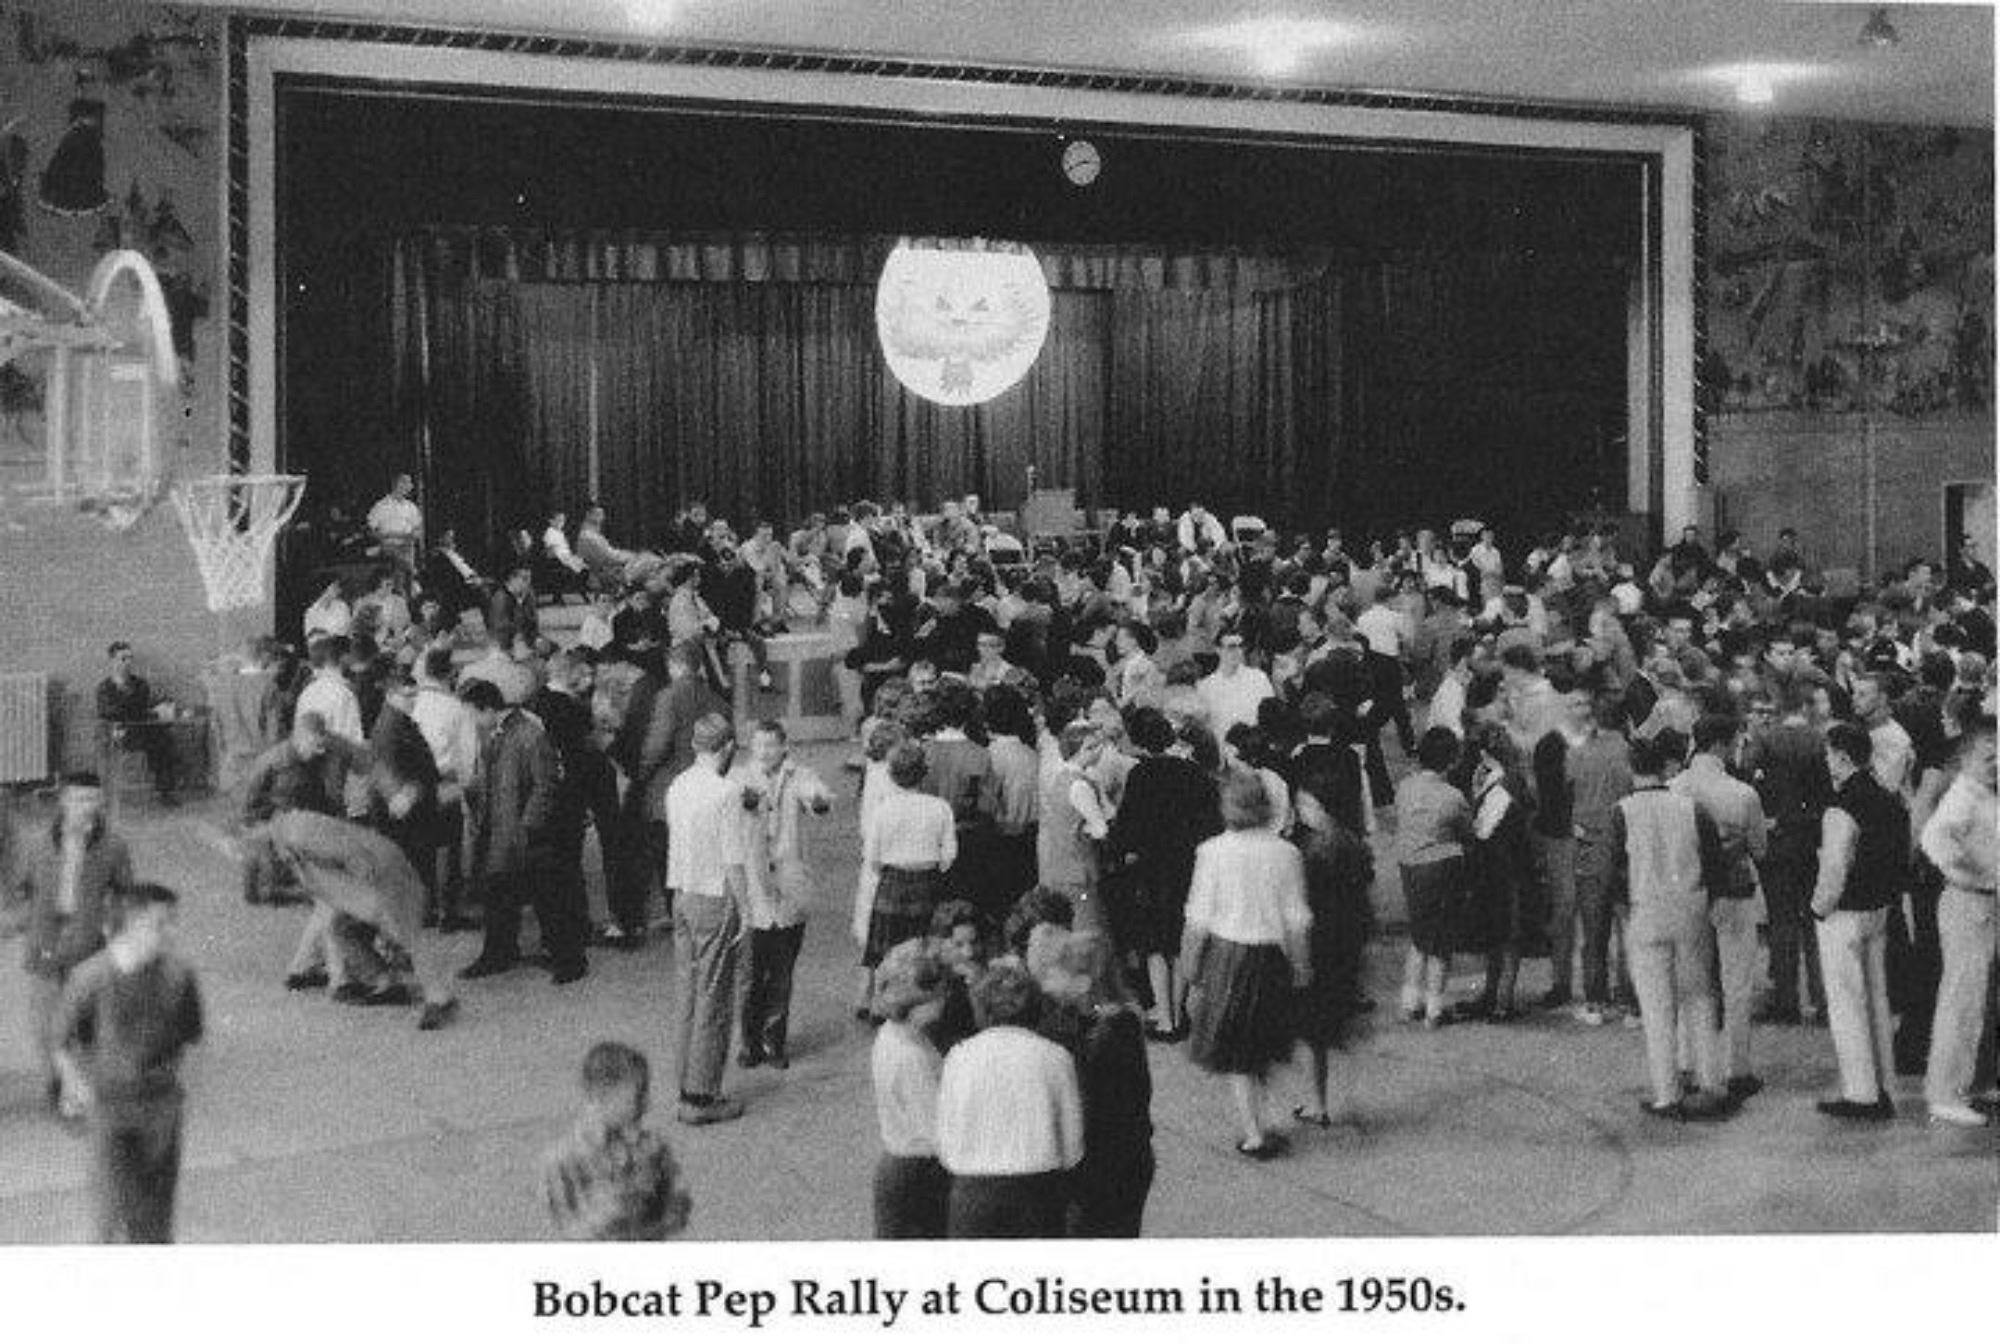 1950s Bobcat Pep Rally at Coliseum